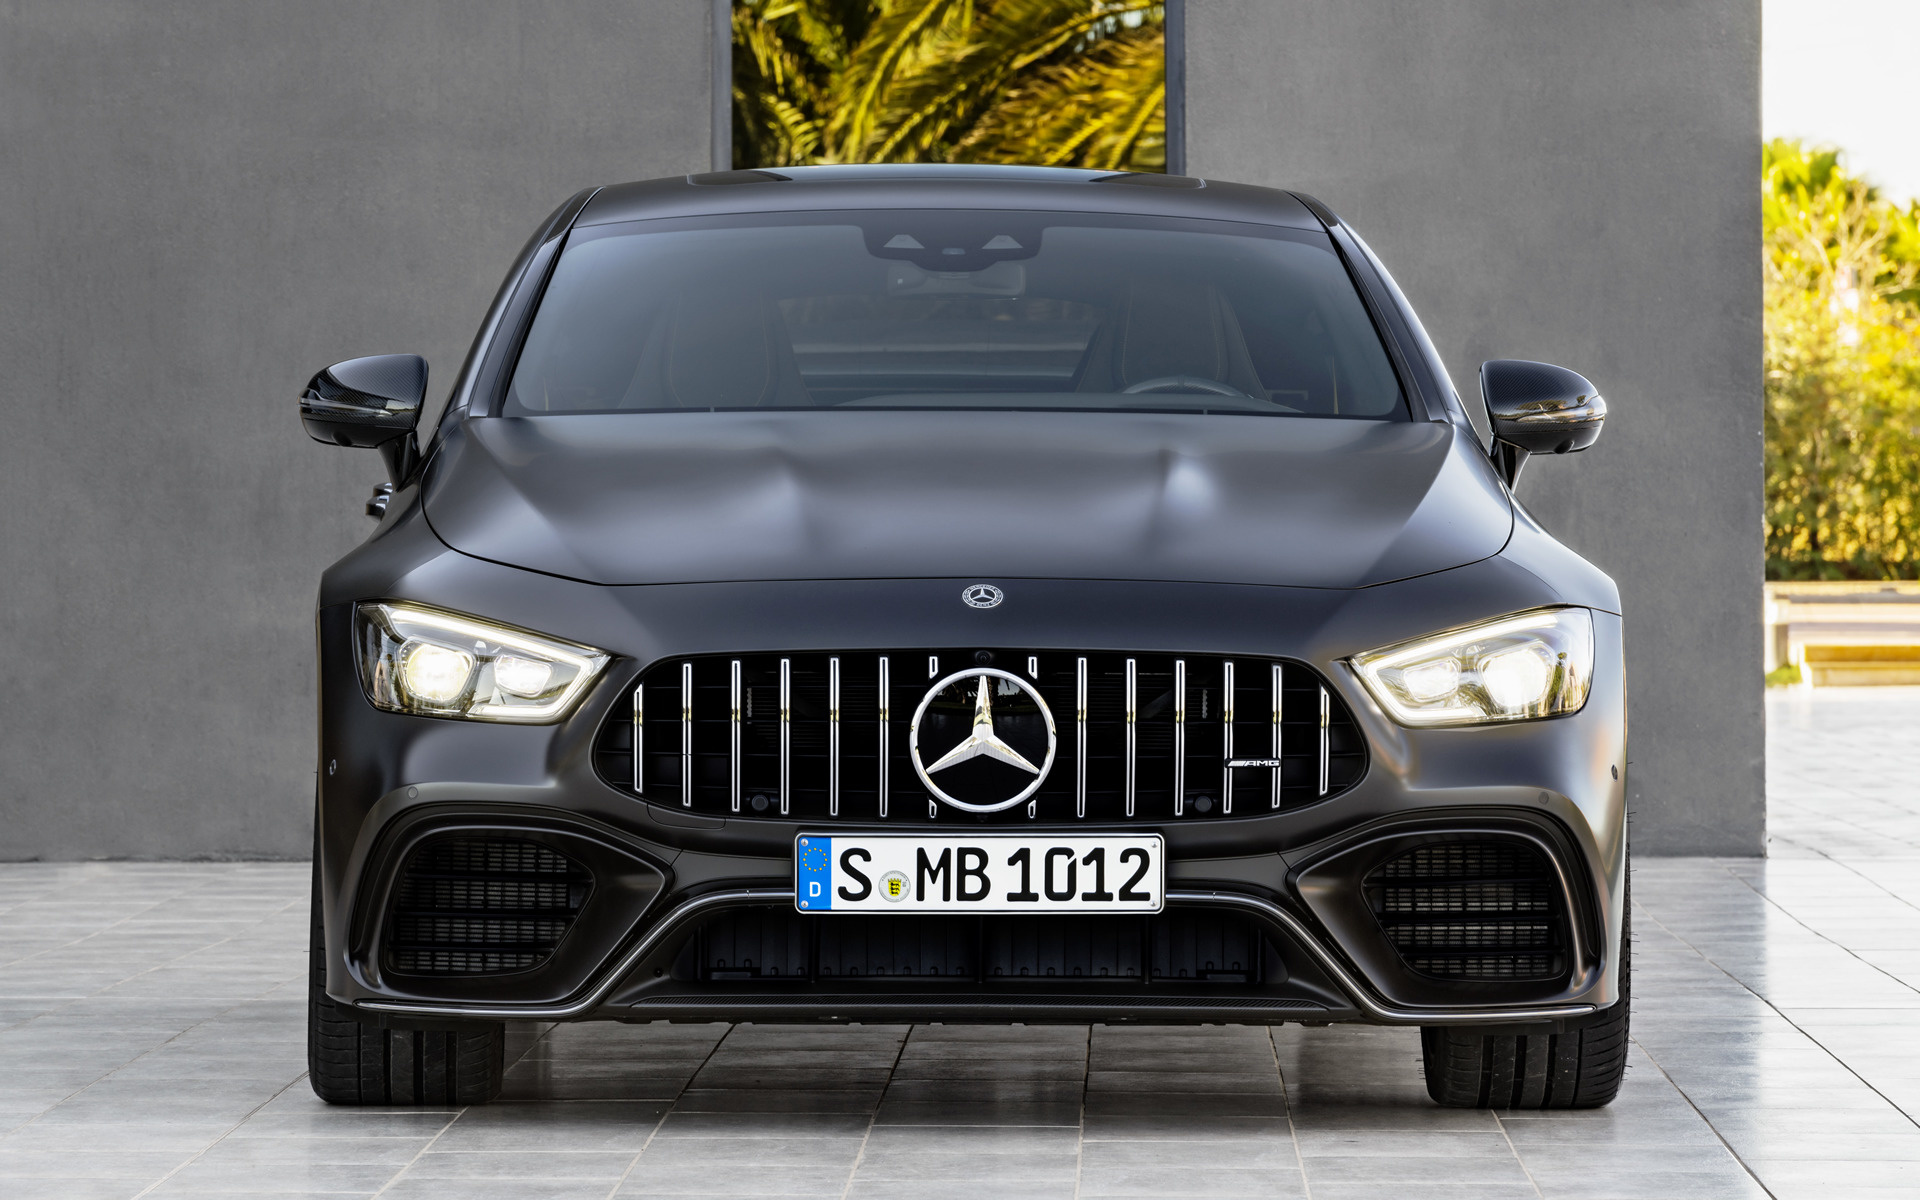 mercedes-amg gt 63 s [4-door] (2018) wallpapers and hd images - car